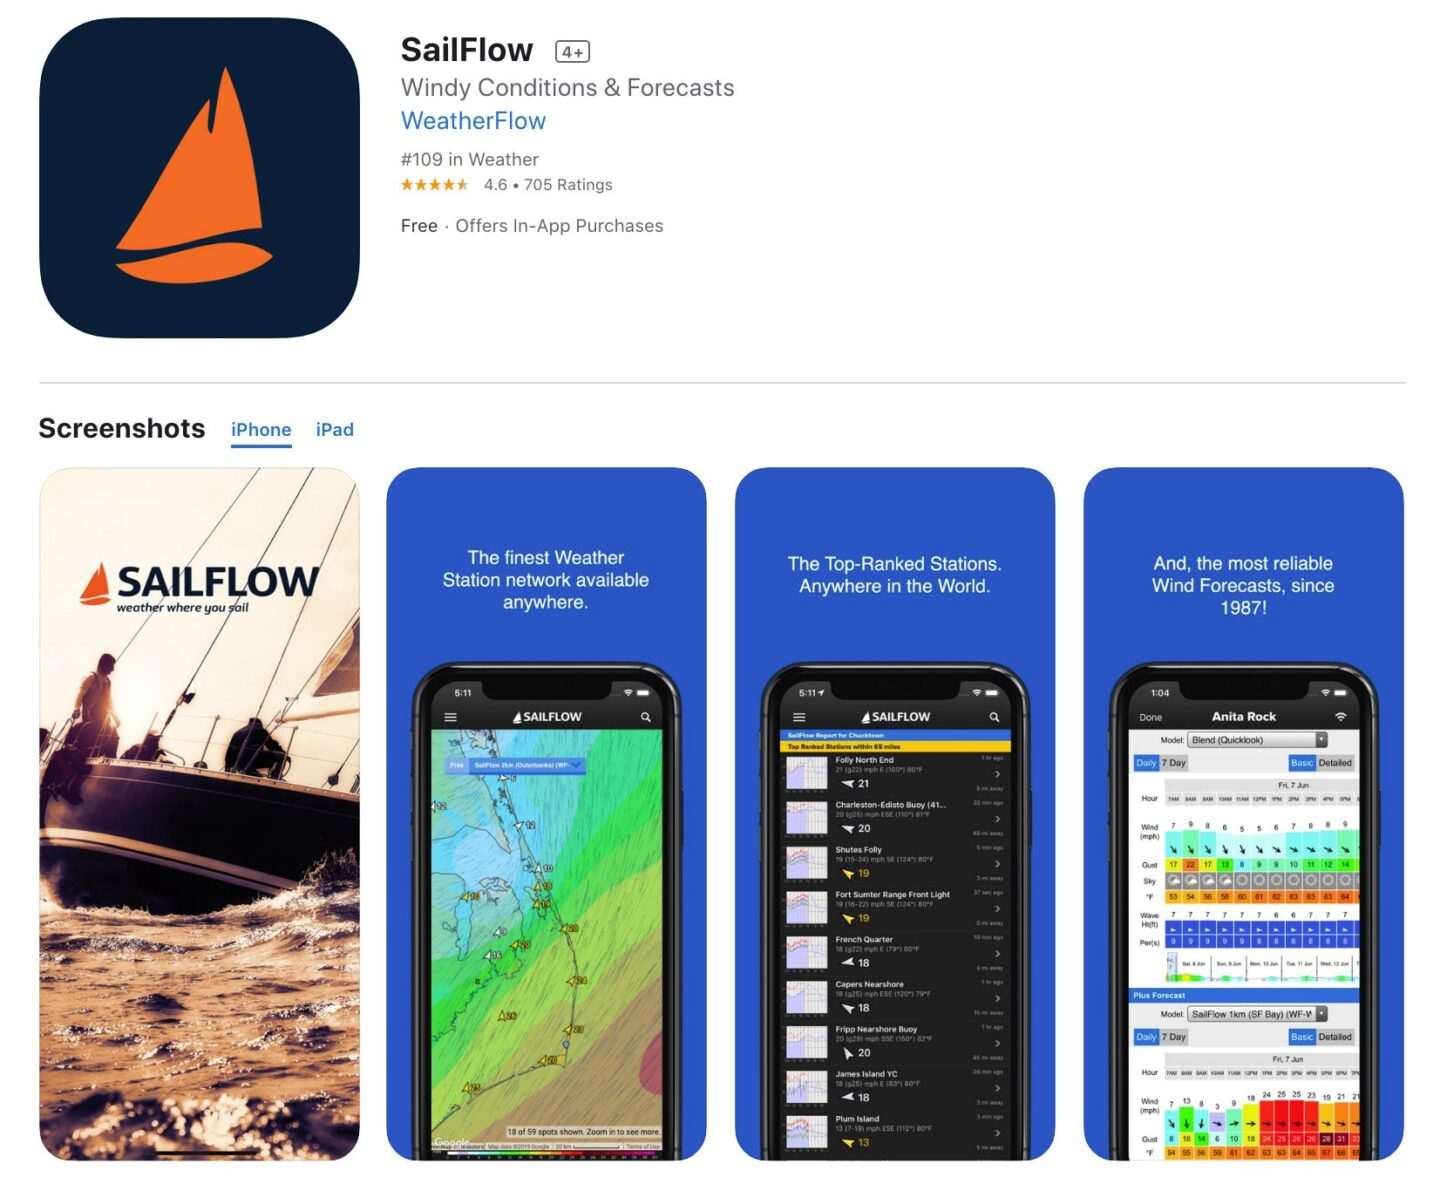 Screenshot of the SailFlow app from the iOS app store.